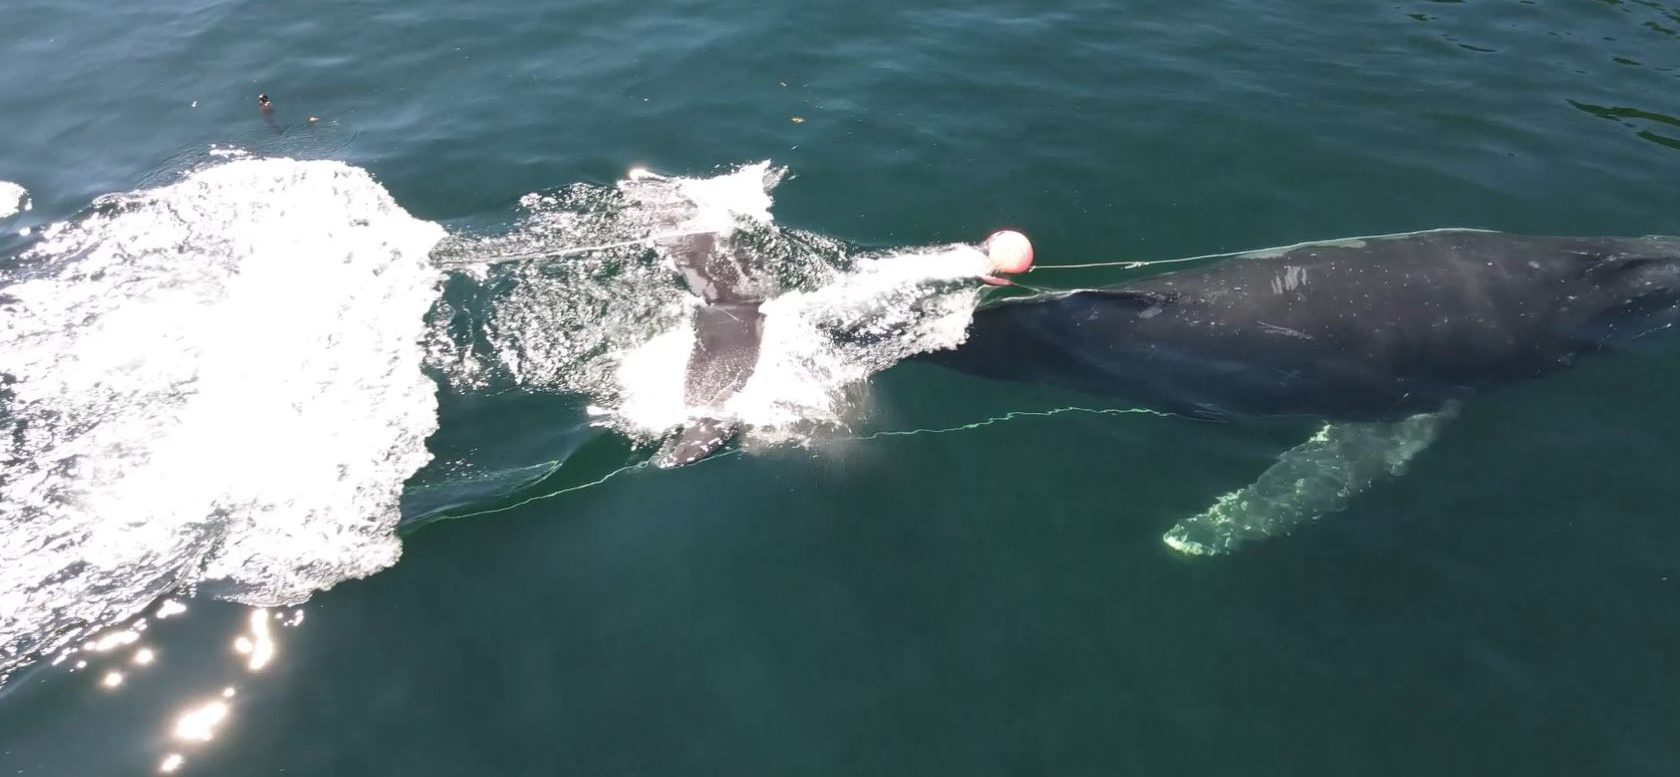 DFO removing fishing gear from entangled humpback whales near Vancouver Island